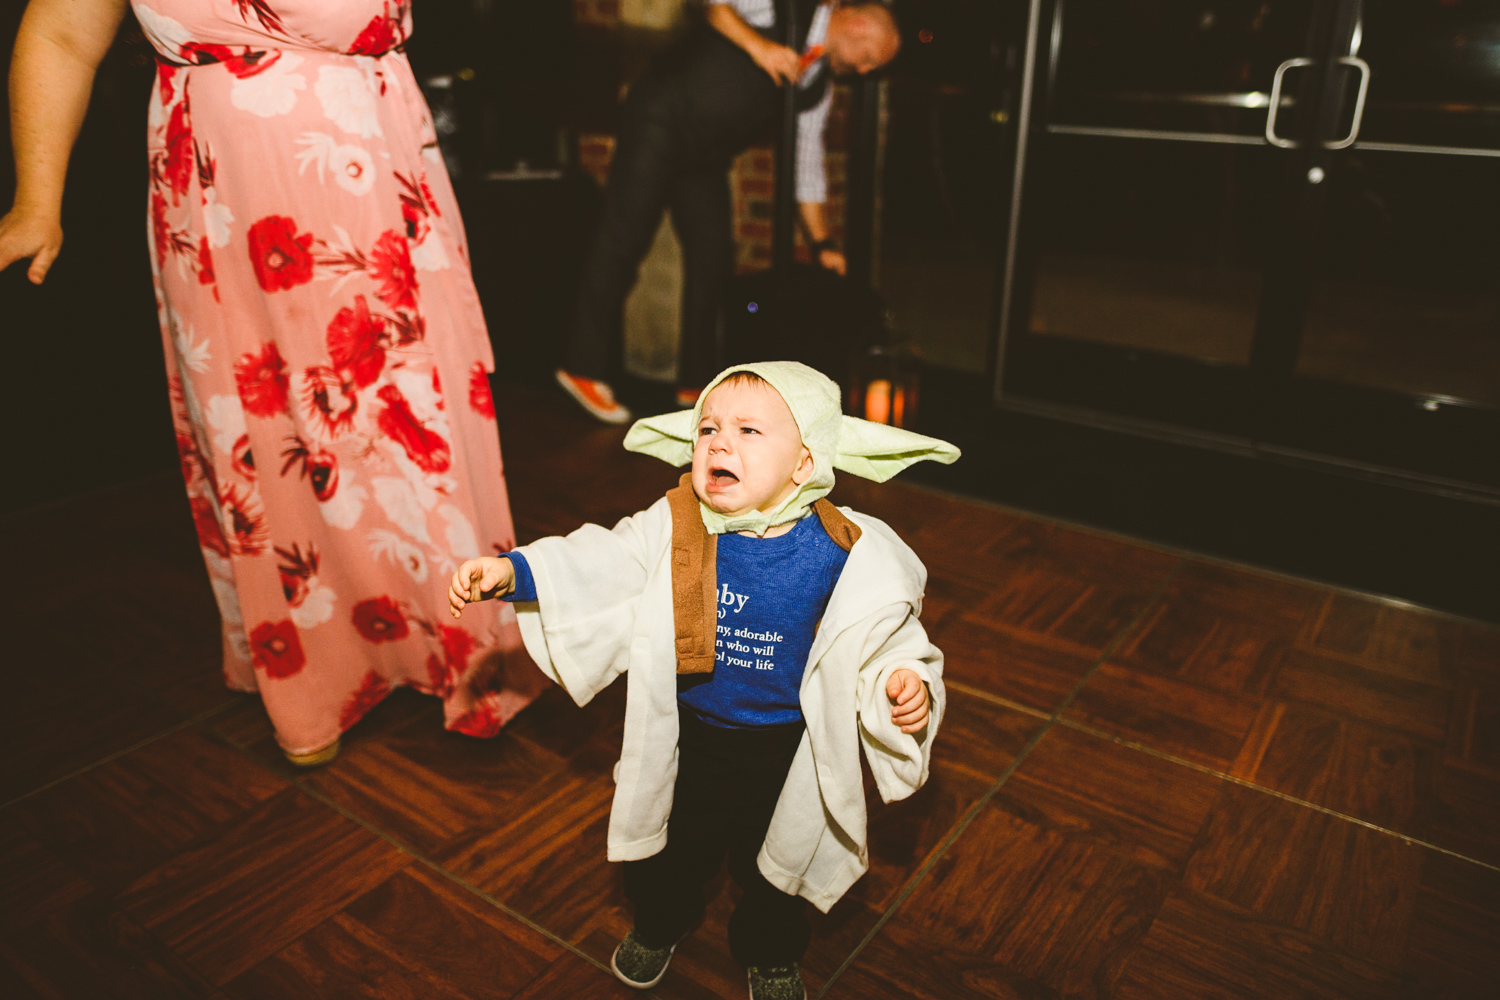 040 - kid with yoda costume cries on the dancefloor.jpg